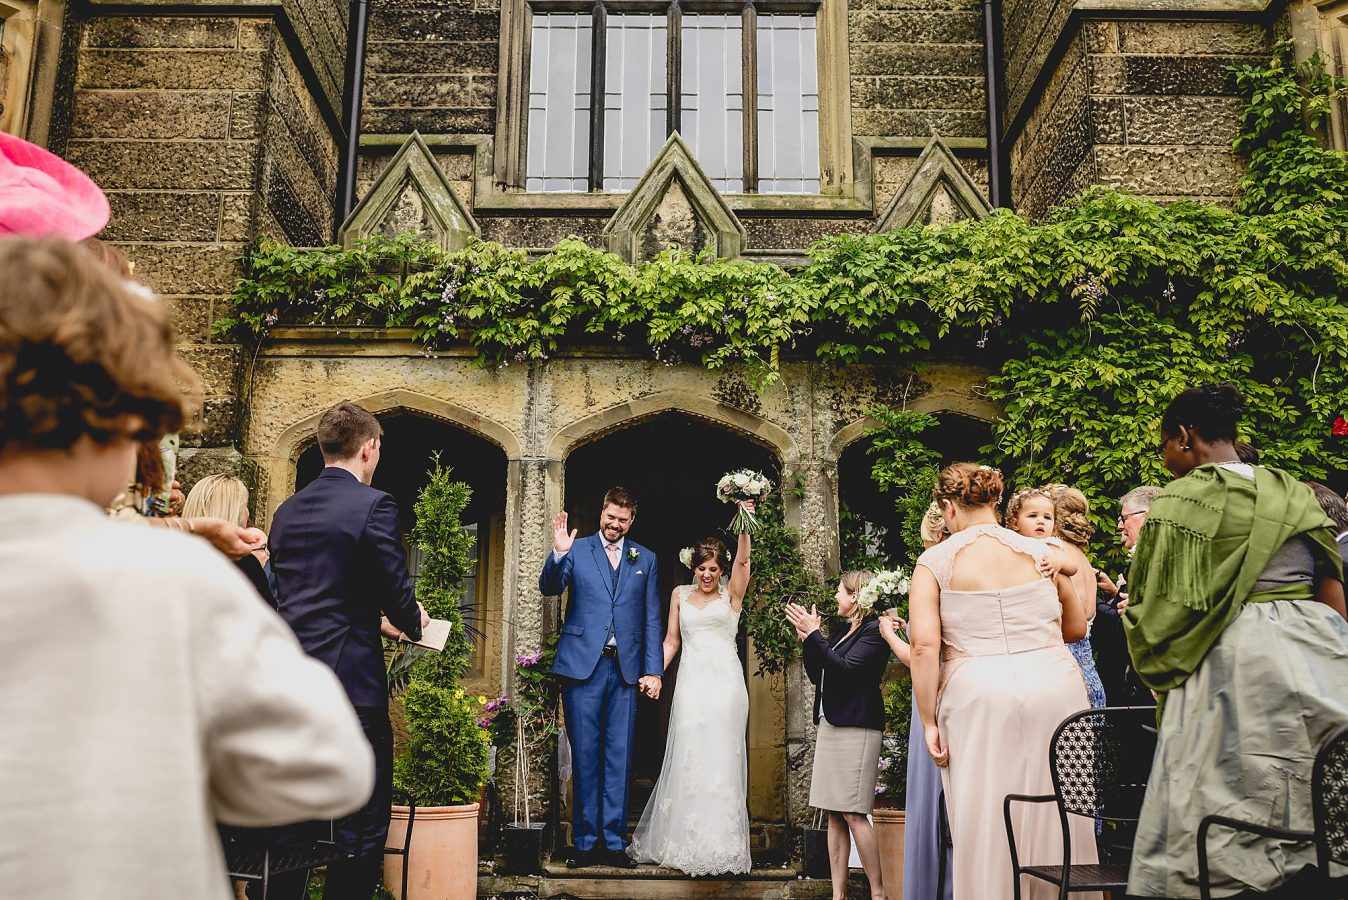 London-Wedding-Photographer-Emmie-Scott-137